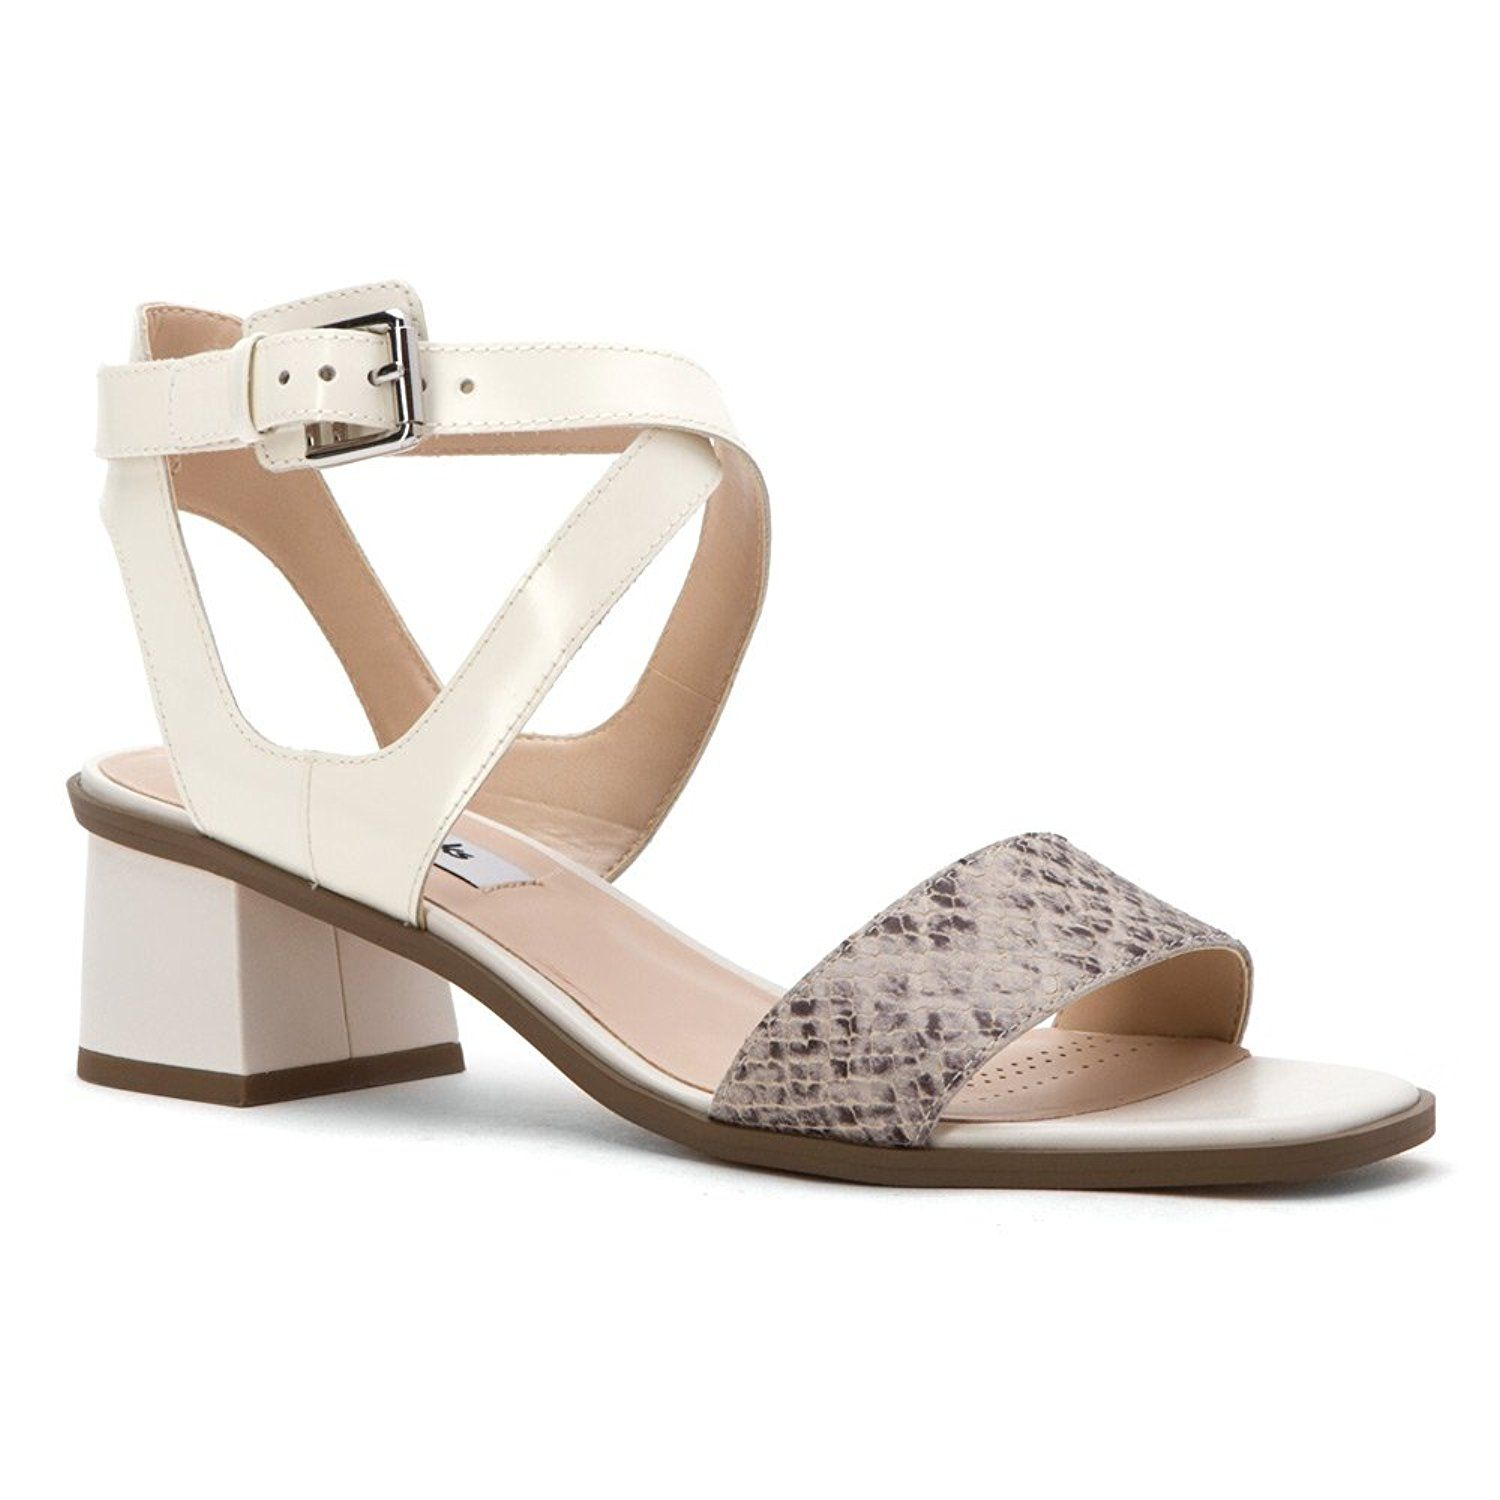 3b71344854a457 Clarks Women s Ivangelie Ray Ankle Strap Sandal -- Hurry! Check out this  great product   Clarks sandals